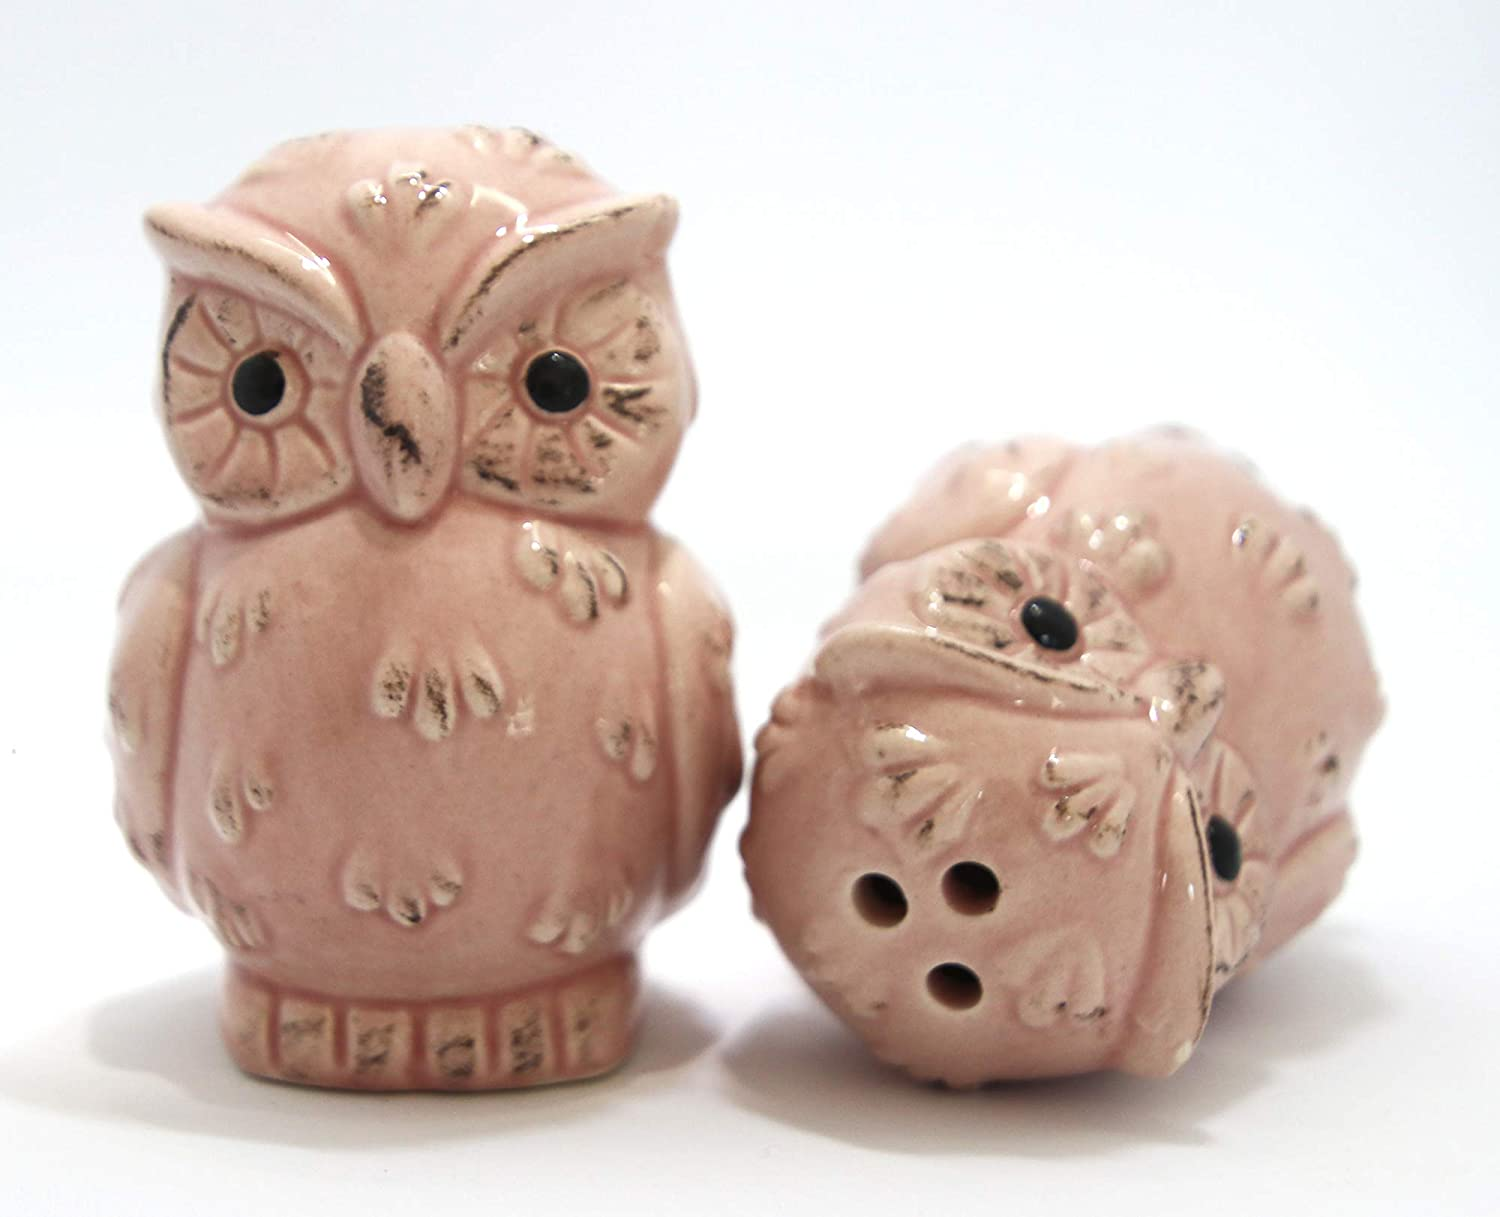 Kitchen Utensils Gadgets Bird Theme Restaurant 3 Piece Owl Salt And Pepper Shaker With Tray House Warming Brown Decor Wedding Gift Great For Collectors Favours Boxed Set Perfect